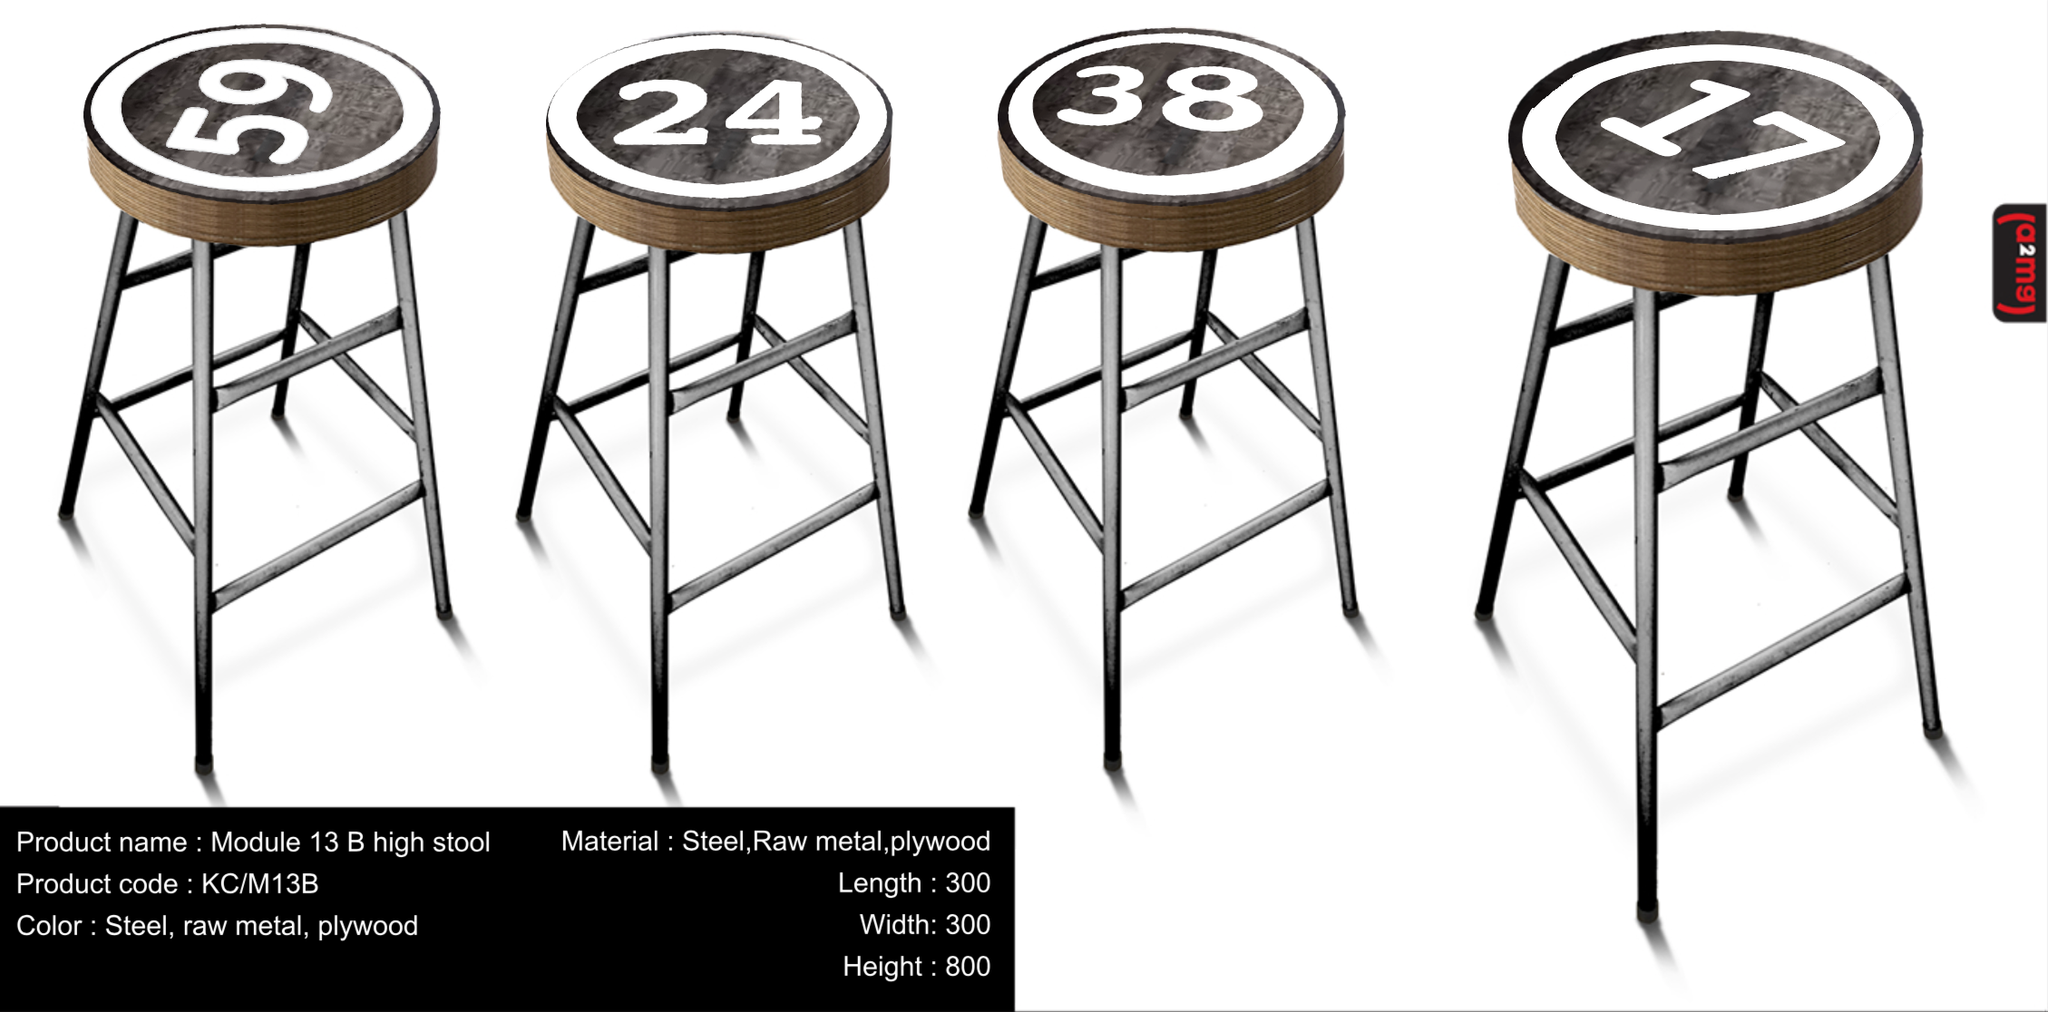 (a2mg) Metal top tavern stools